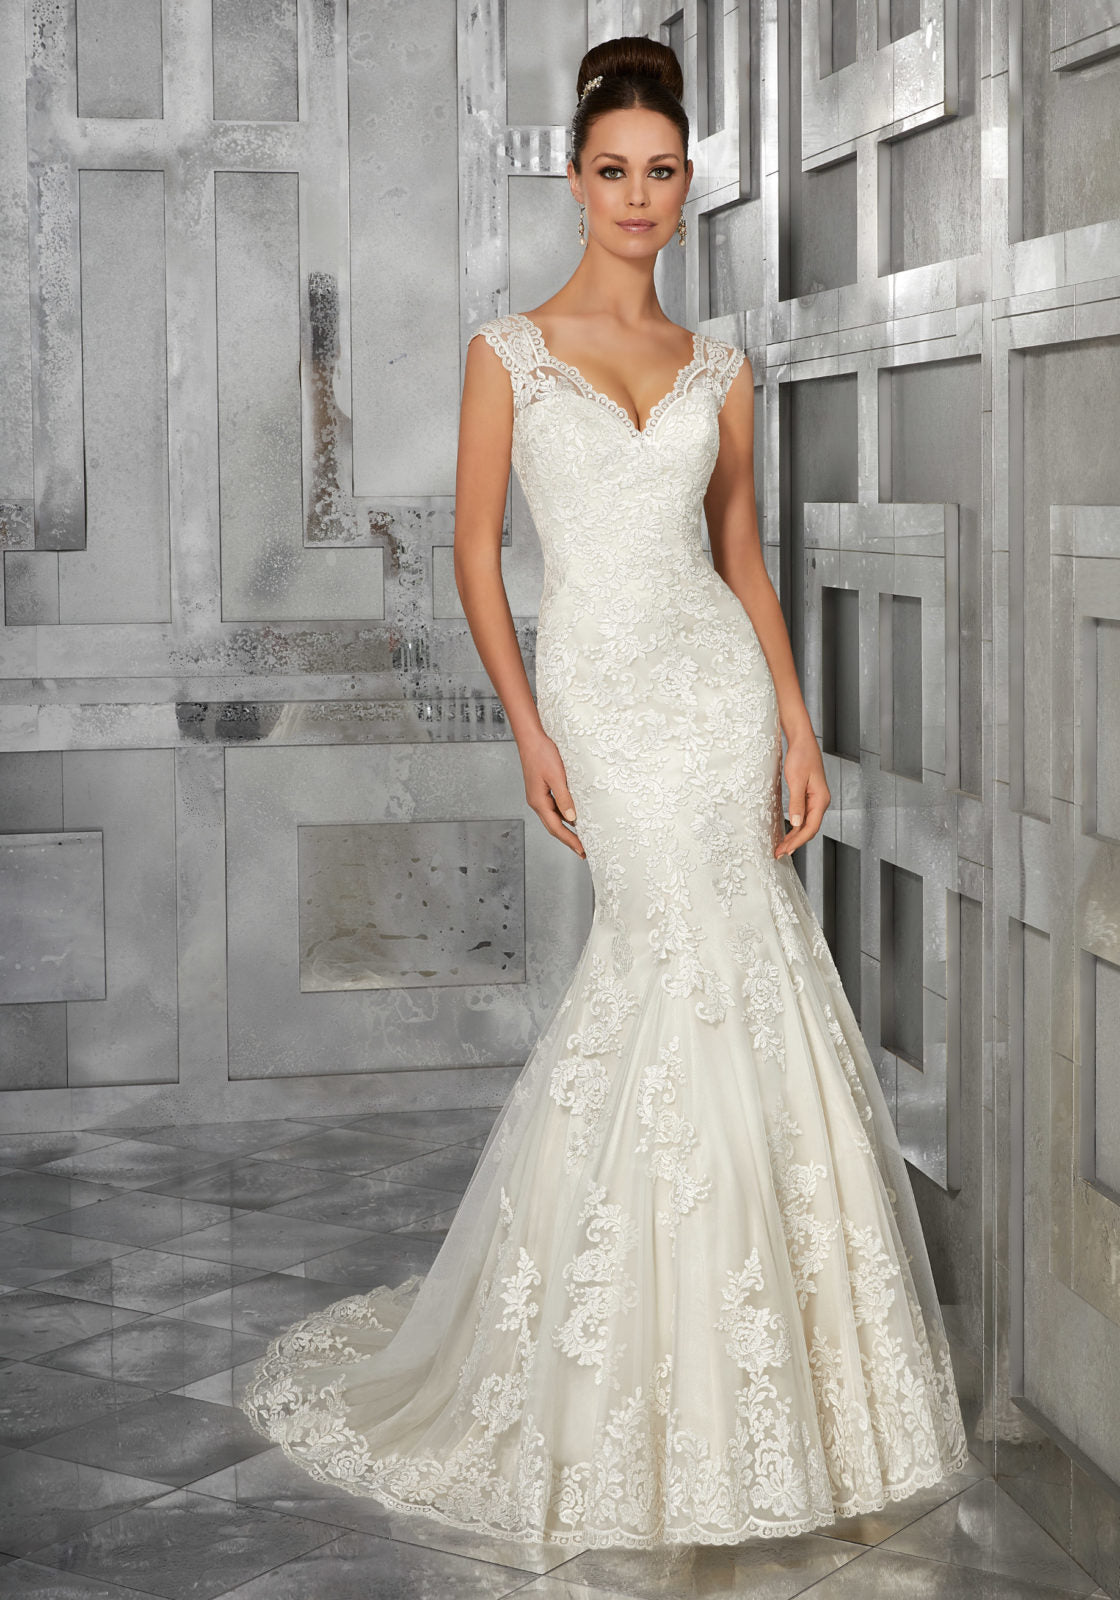 #C5011 - Concepcion Bridal & Quinceañera Boutique